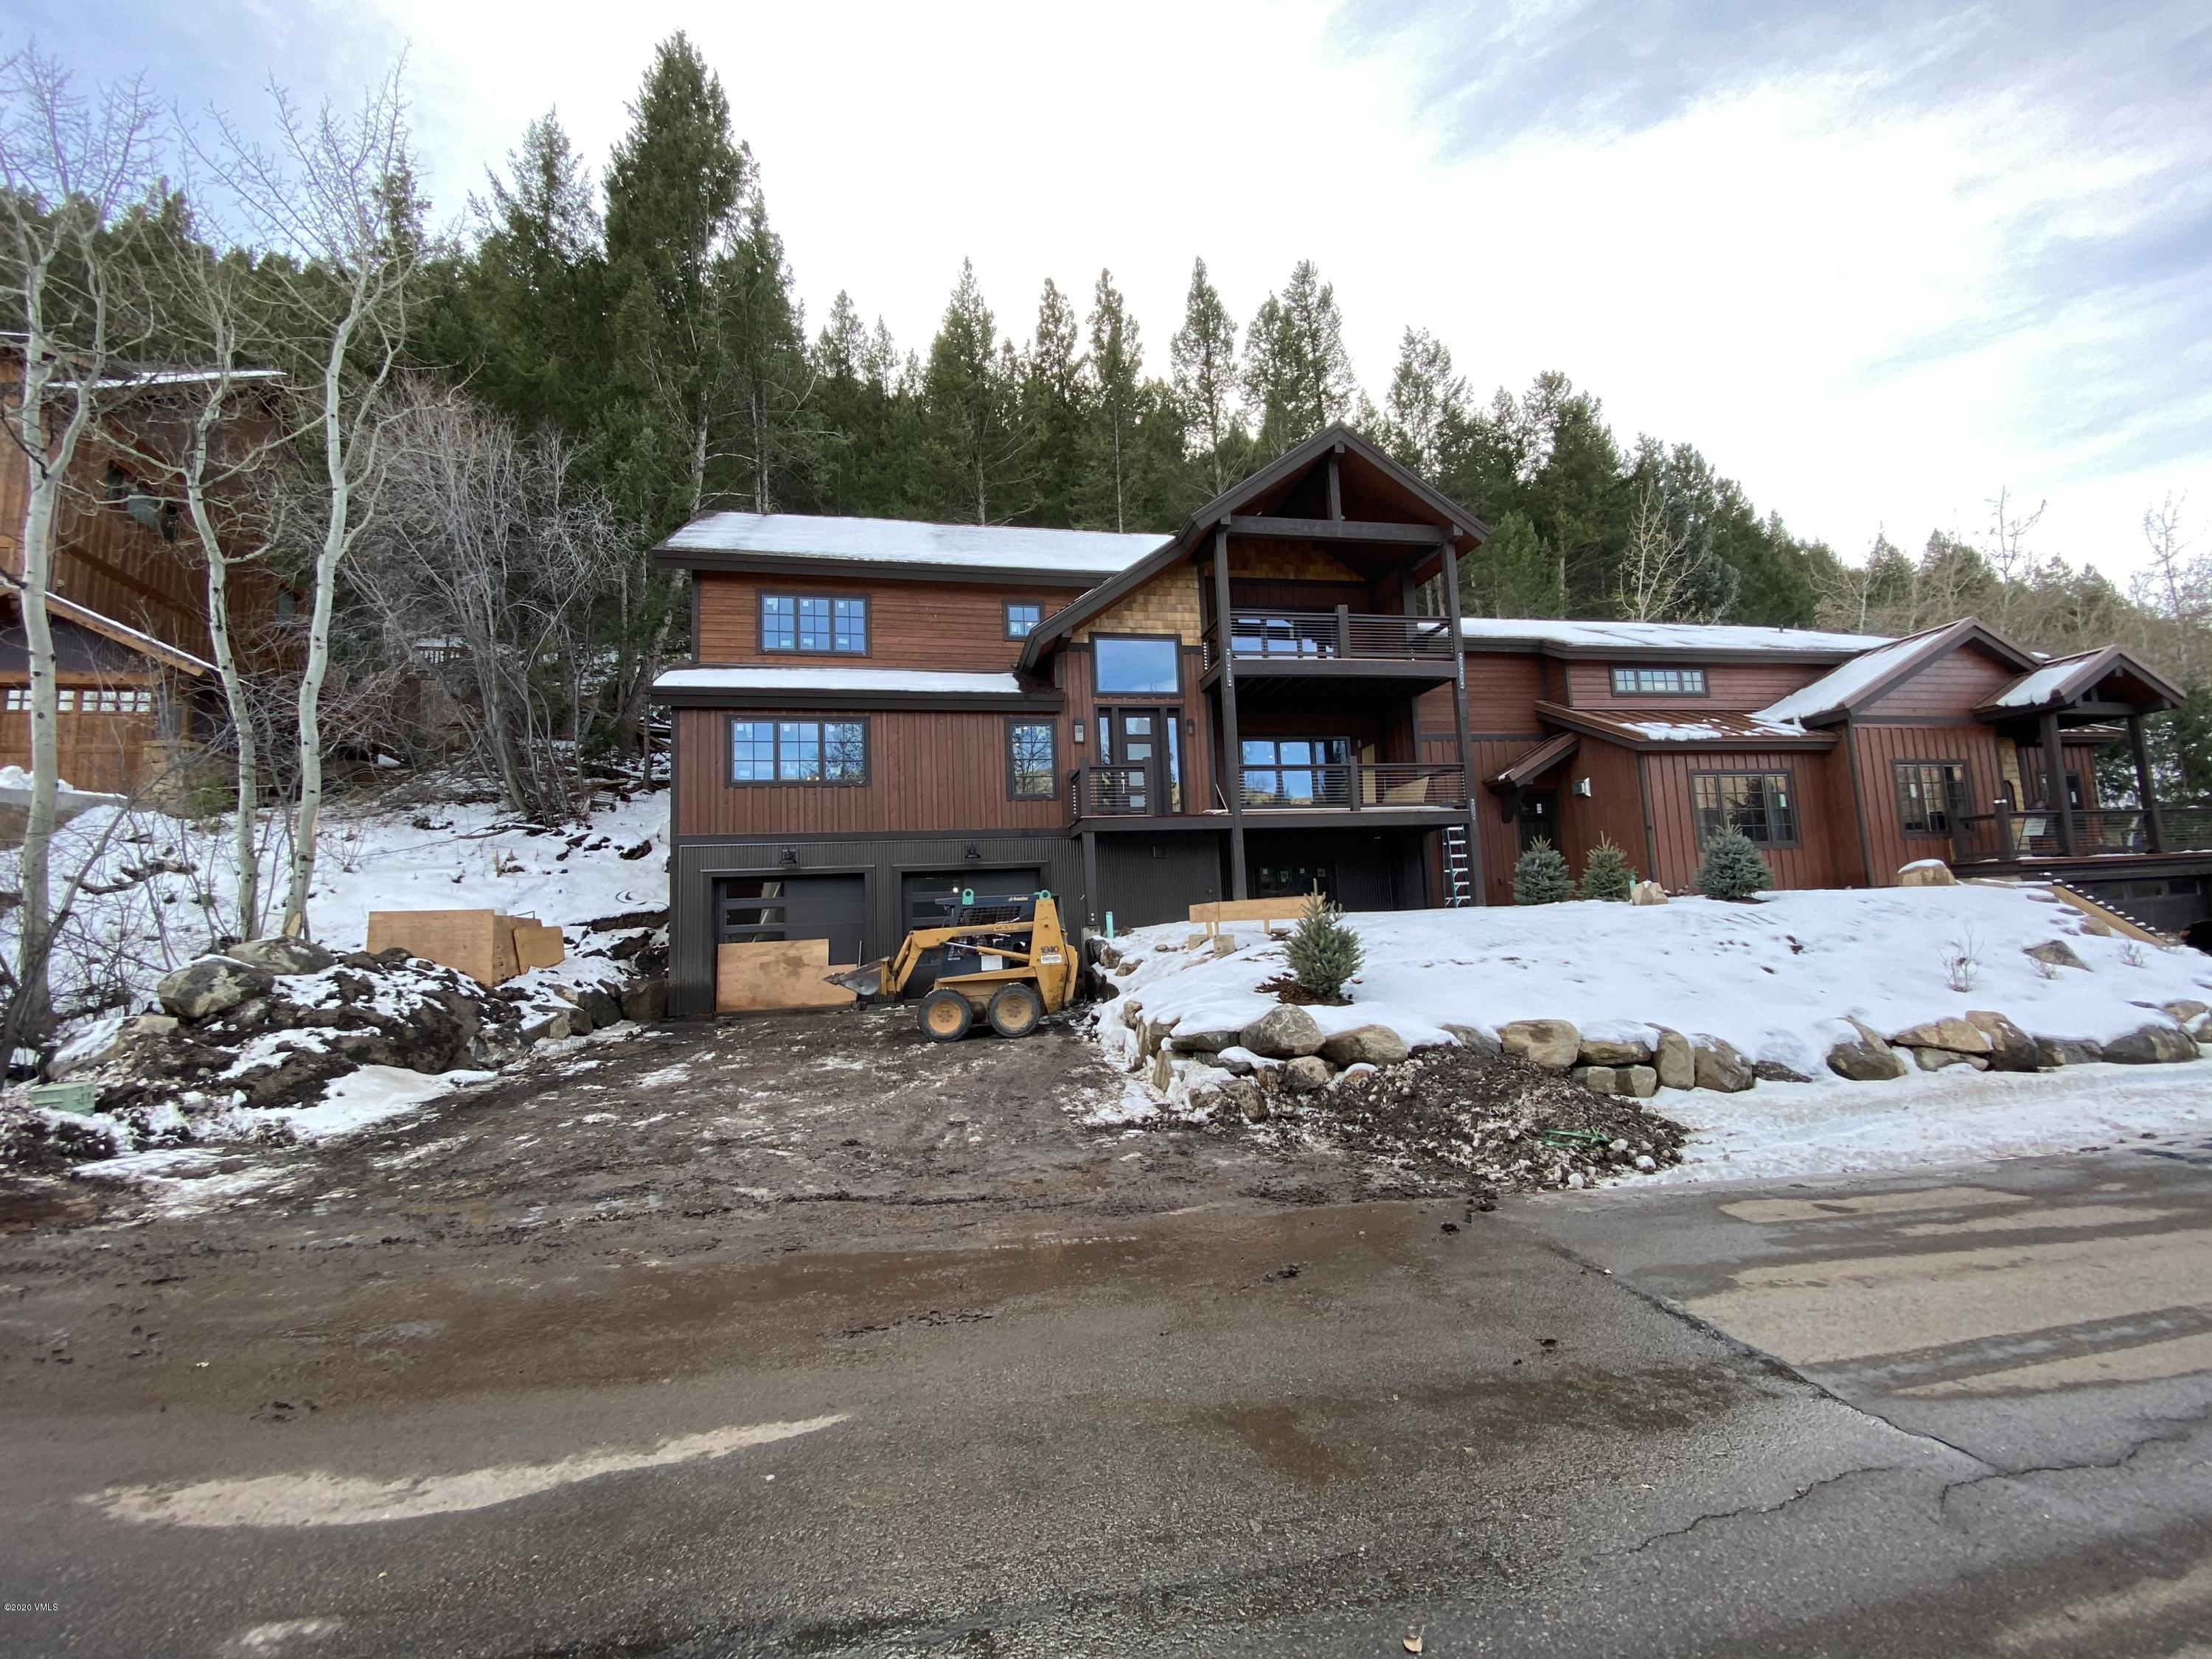 New Construction, great open floor plan with additional flex room on lower level with a 3/4 bath that could be a large 5th bedroom.  Wonderful built in benches and cubbies create a large mudroom for residents with outlets for boot warmers.  Large oversized heated garage, over 600 square feet with 10ft high ceilings and separate garage doors. Many other great features such as a large pantry/laundry room next to kitchen with extra counter space for food prep and storage, and a built in pantry at kitchen with multiple turn style shelves, a must see.  Top of the line finishes and details throughout with top of the line Kitchen Aid SMART appliances, SMART LG Washer/Dryer, radiant in floor heat, custom cabinetry and granite counters throughout. 9ft high and vaulted ceilings throughout, with tongue in groove wood ceilings in some rooms.  7ft doors, free standing tub & Rain Head shower in Master Bath. Hot tub included and will be placed on patio. To be completed by end of 2020, if not sooner.